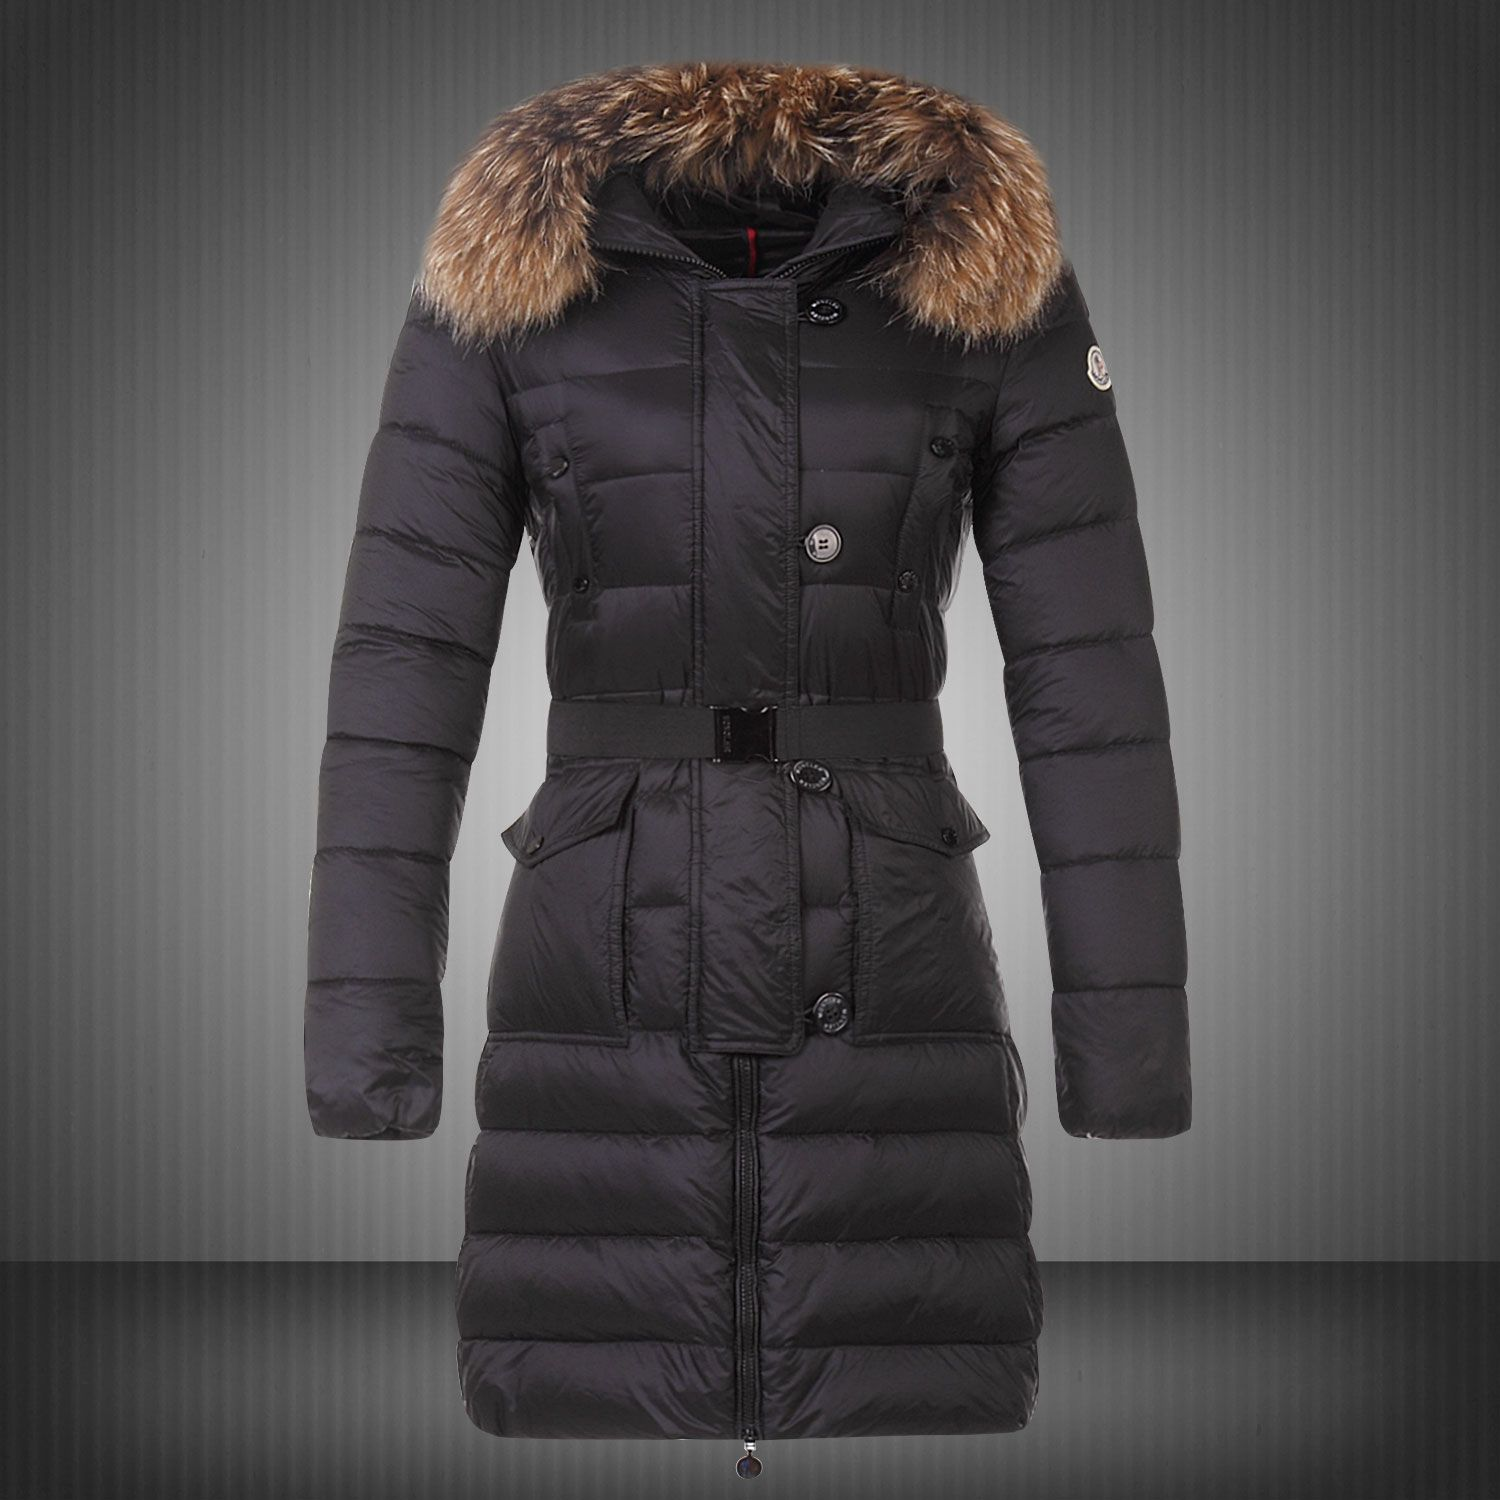 Moncler Womens Down Coat Cheap Moncler Jackets On Sale UK